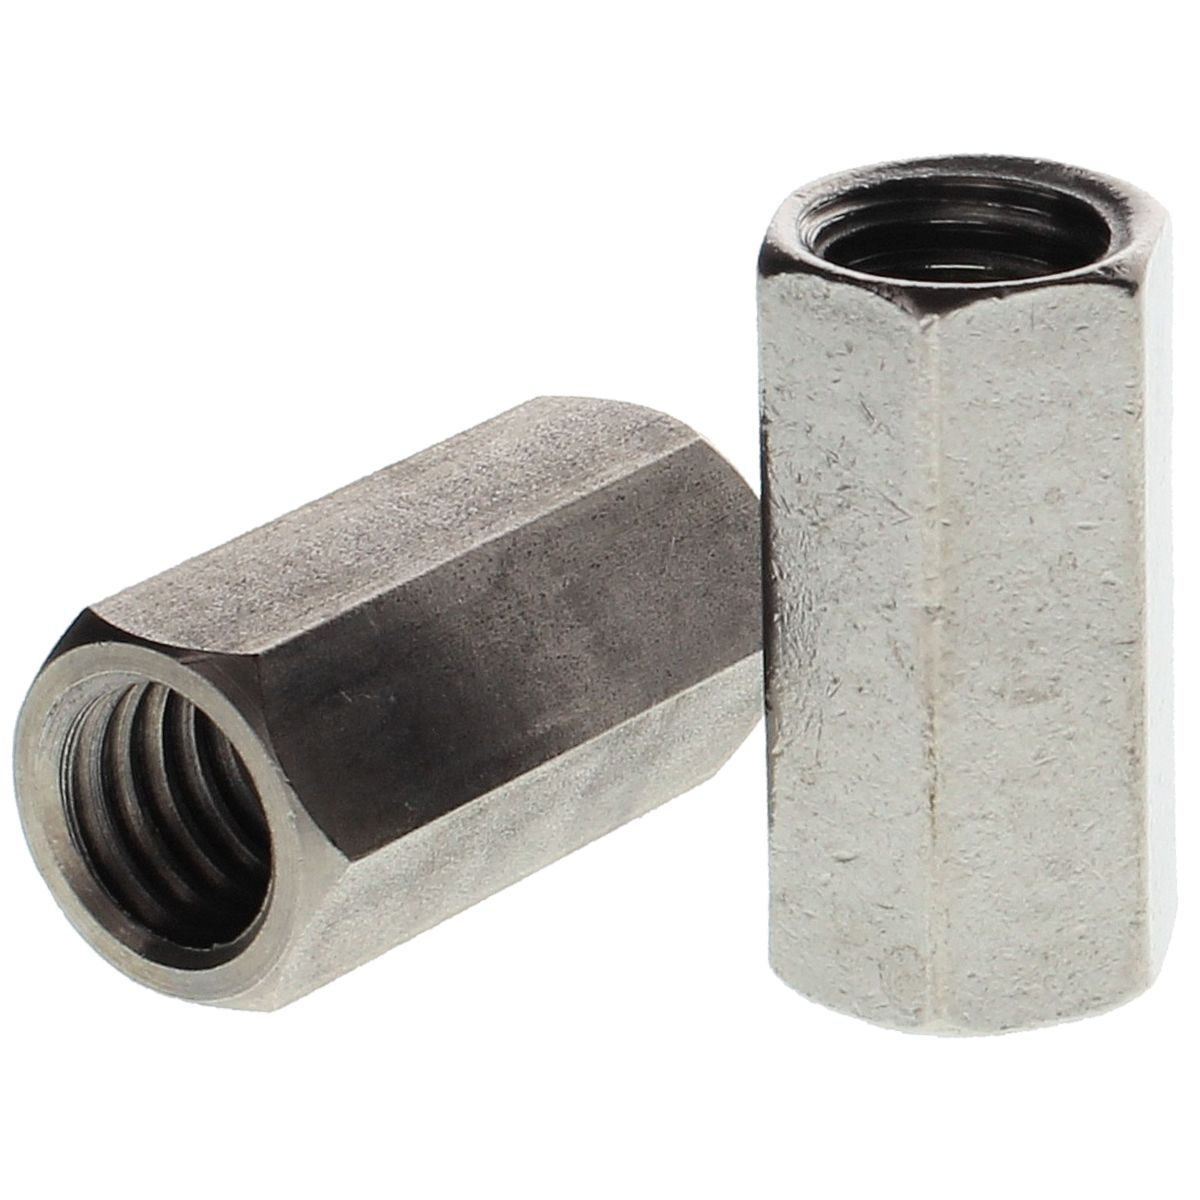 """#10-24 x 3/4"""" Hex Coupling Nuts — 18-8 Stainless Steel, Coarse, 25/PKG"""